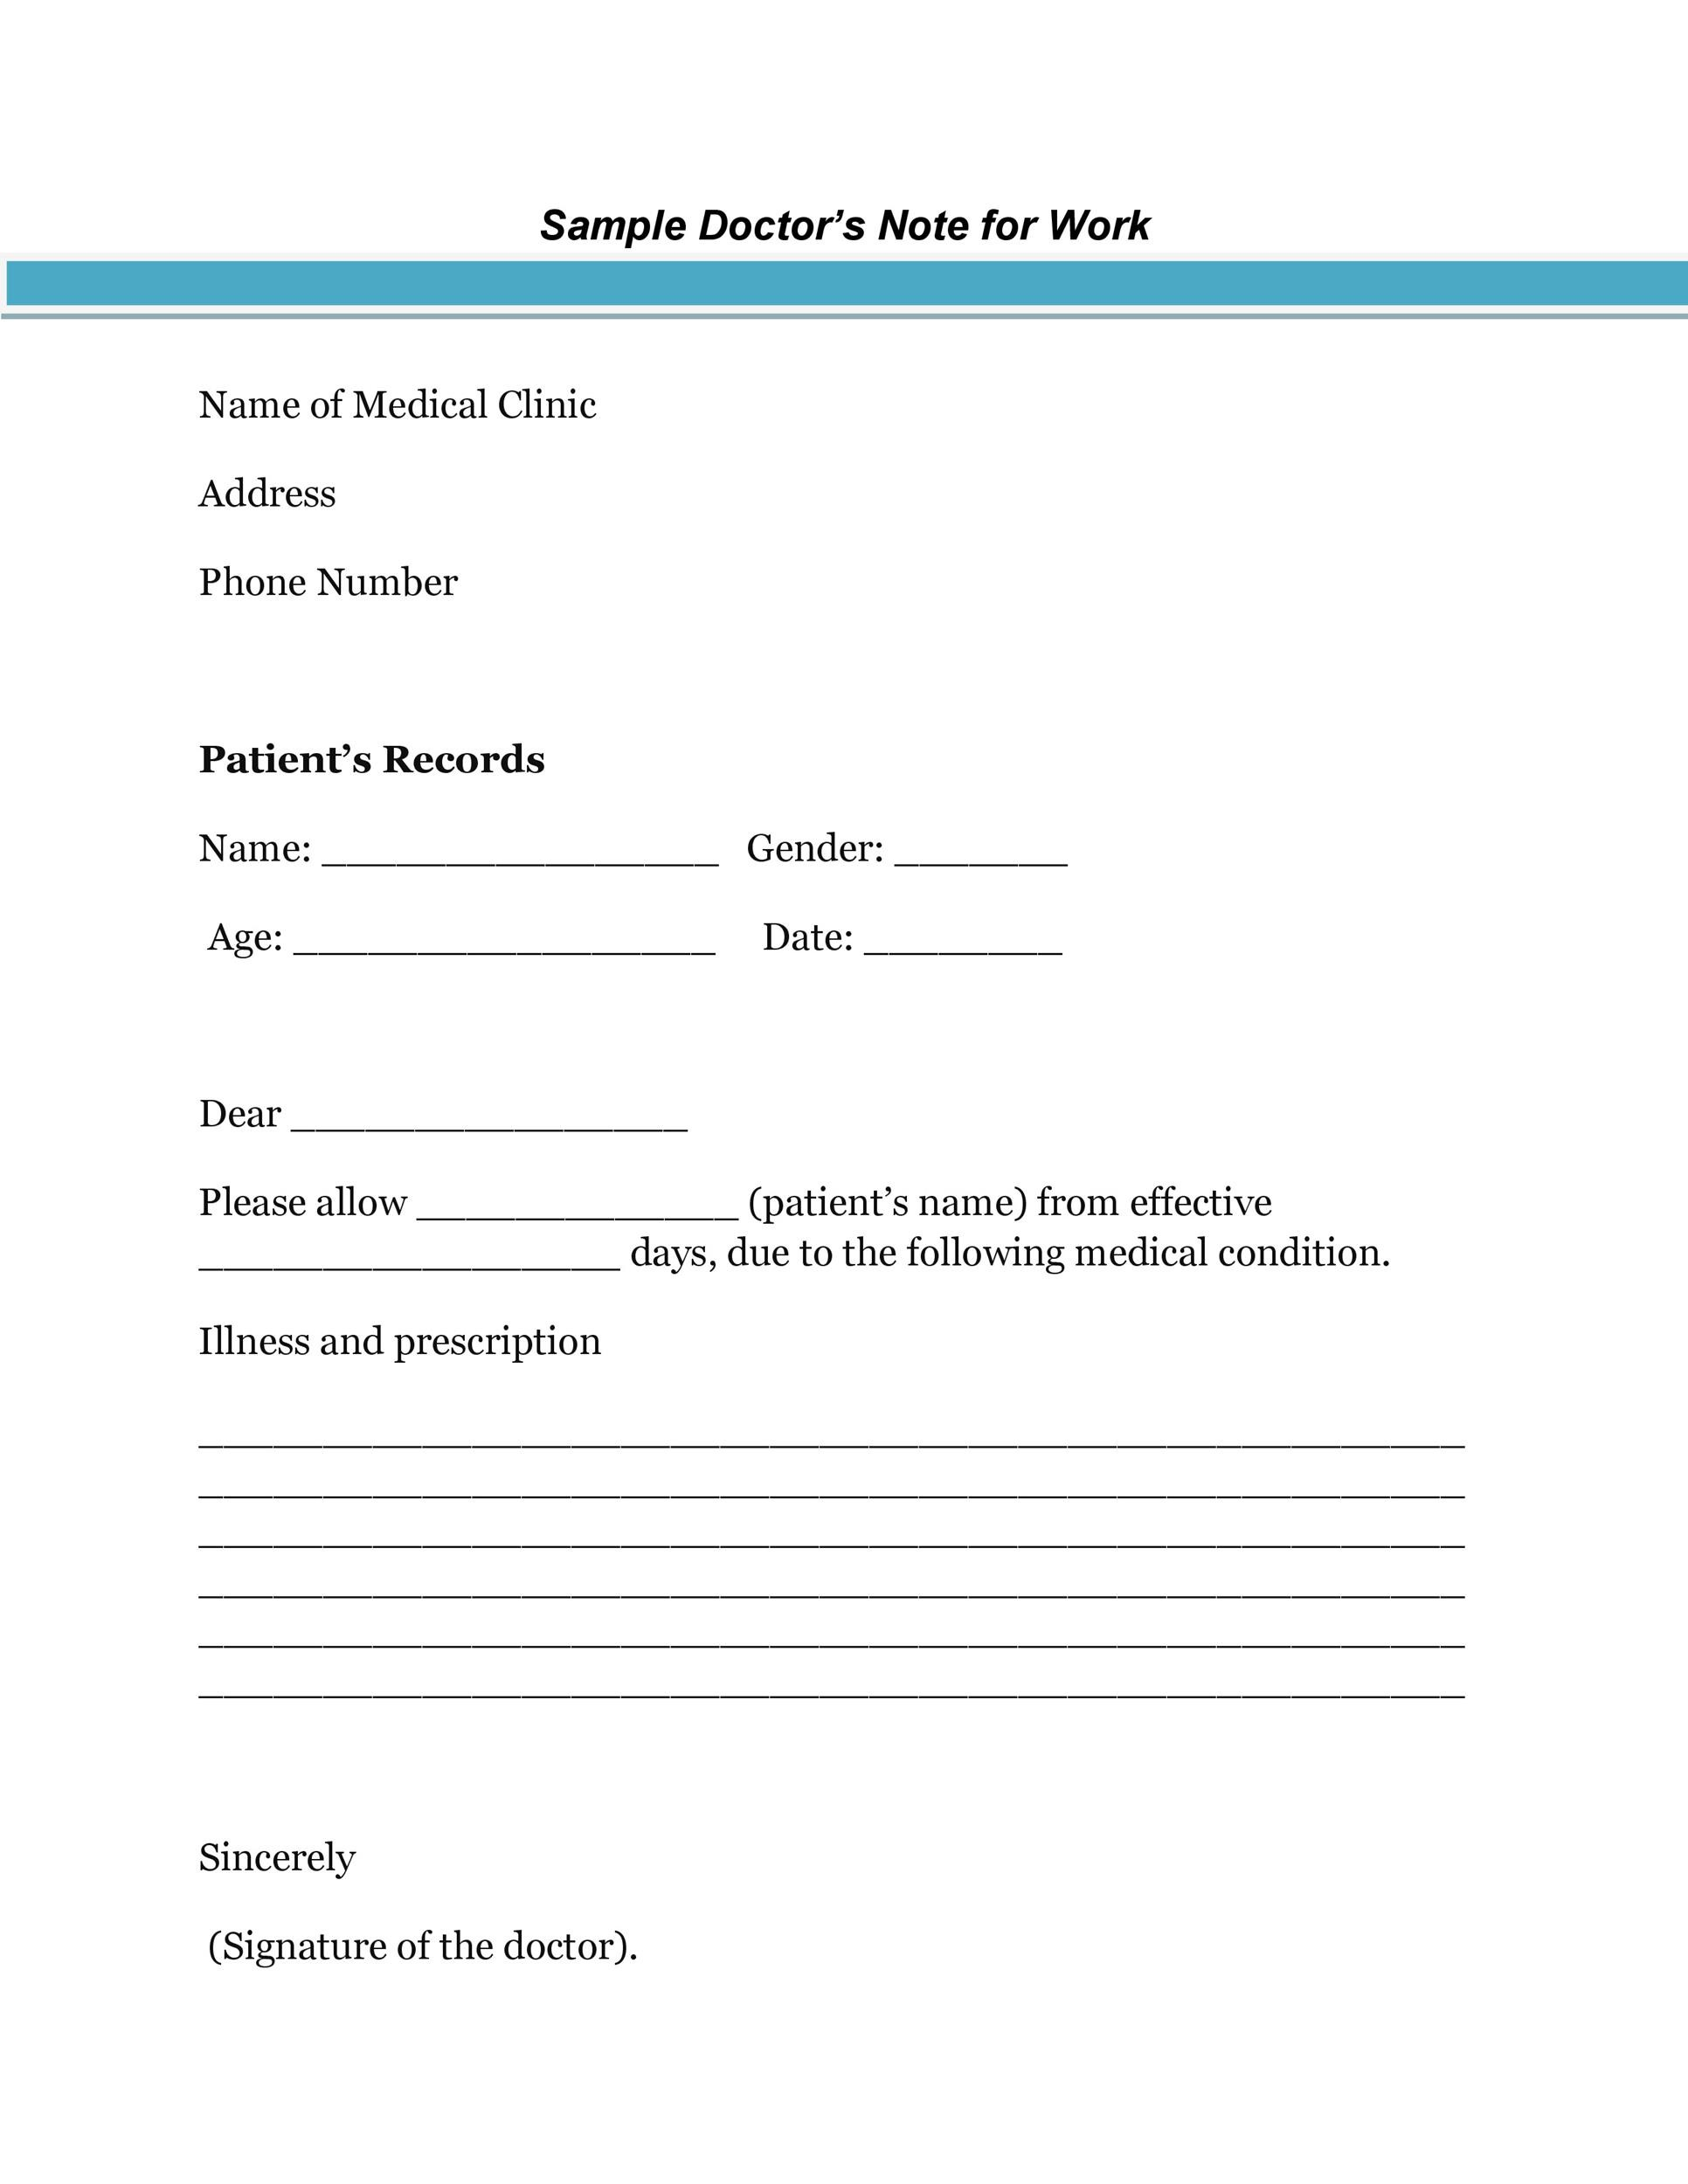 Doctors Note Template Pdf | 25 Free Doctor Note Excuse Templates ᐅ Template Lab